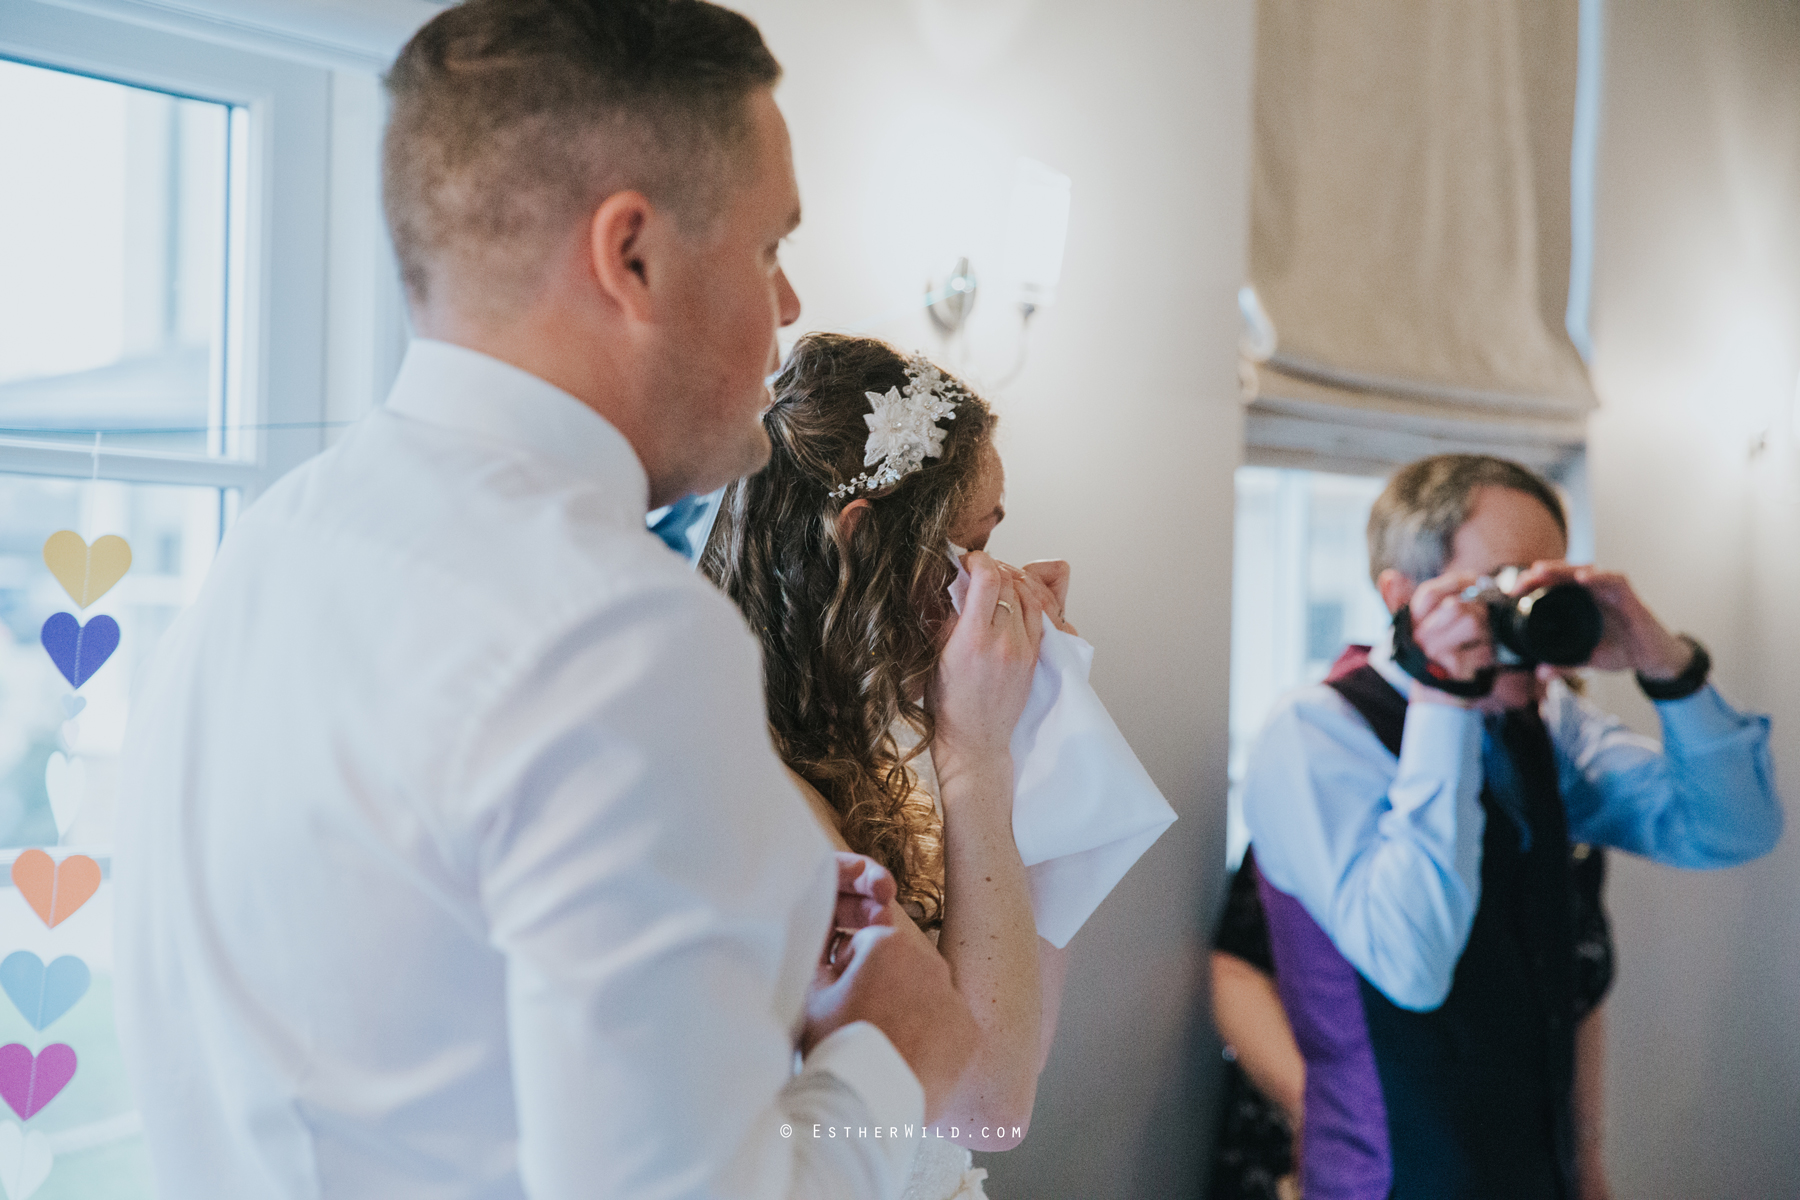 The_BoatHouse_Wedding_Venue_Ormesby_Norfolk_Broads_Boat_Wedding_Photography_Esther_Wild_Photographer_IMG_2558.jpg